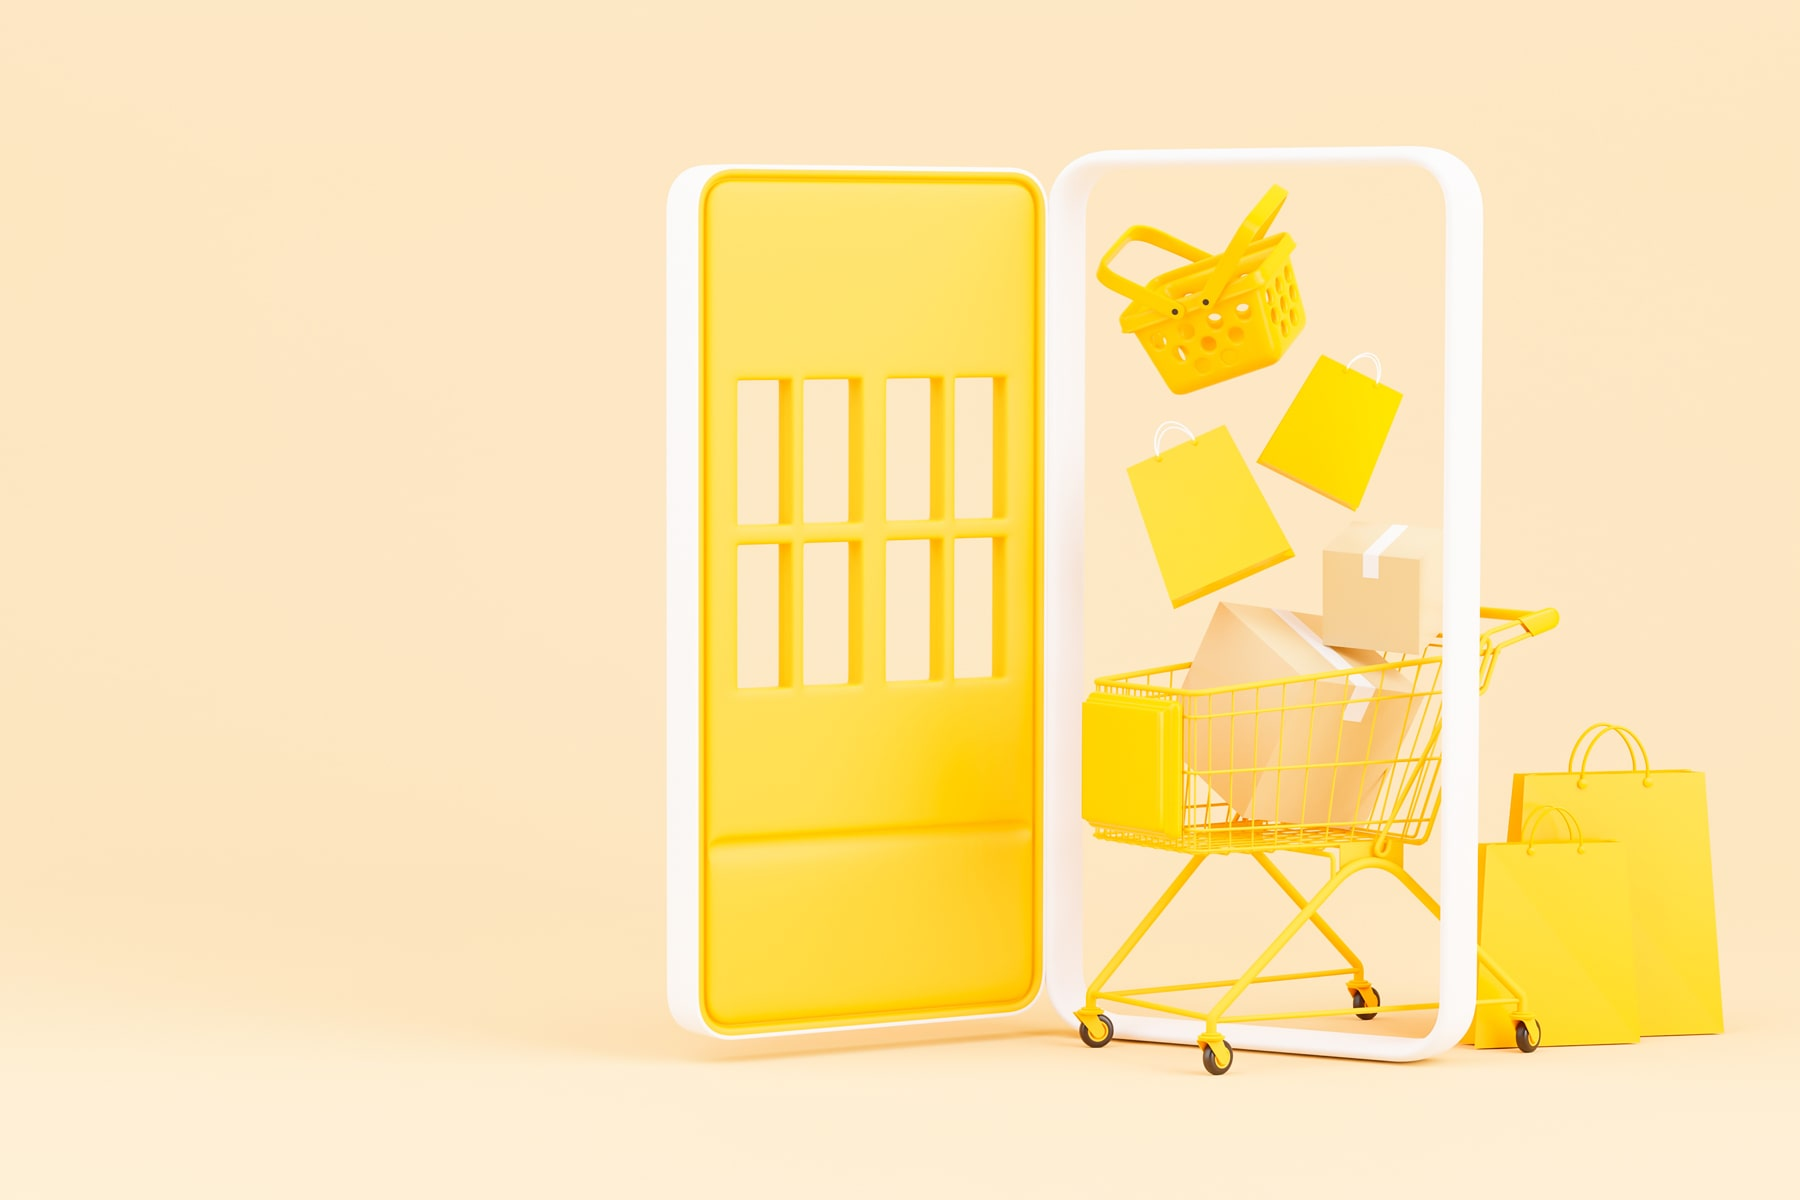 3d rendered image of a yellow smartphone that's turning into open doors to invite online shopping.